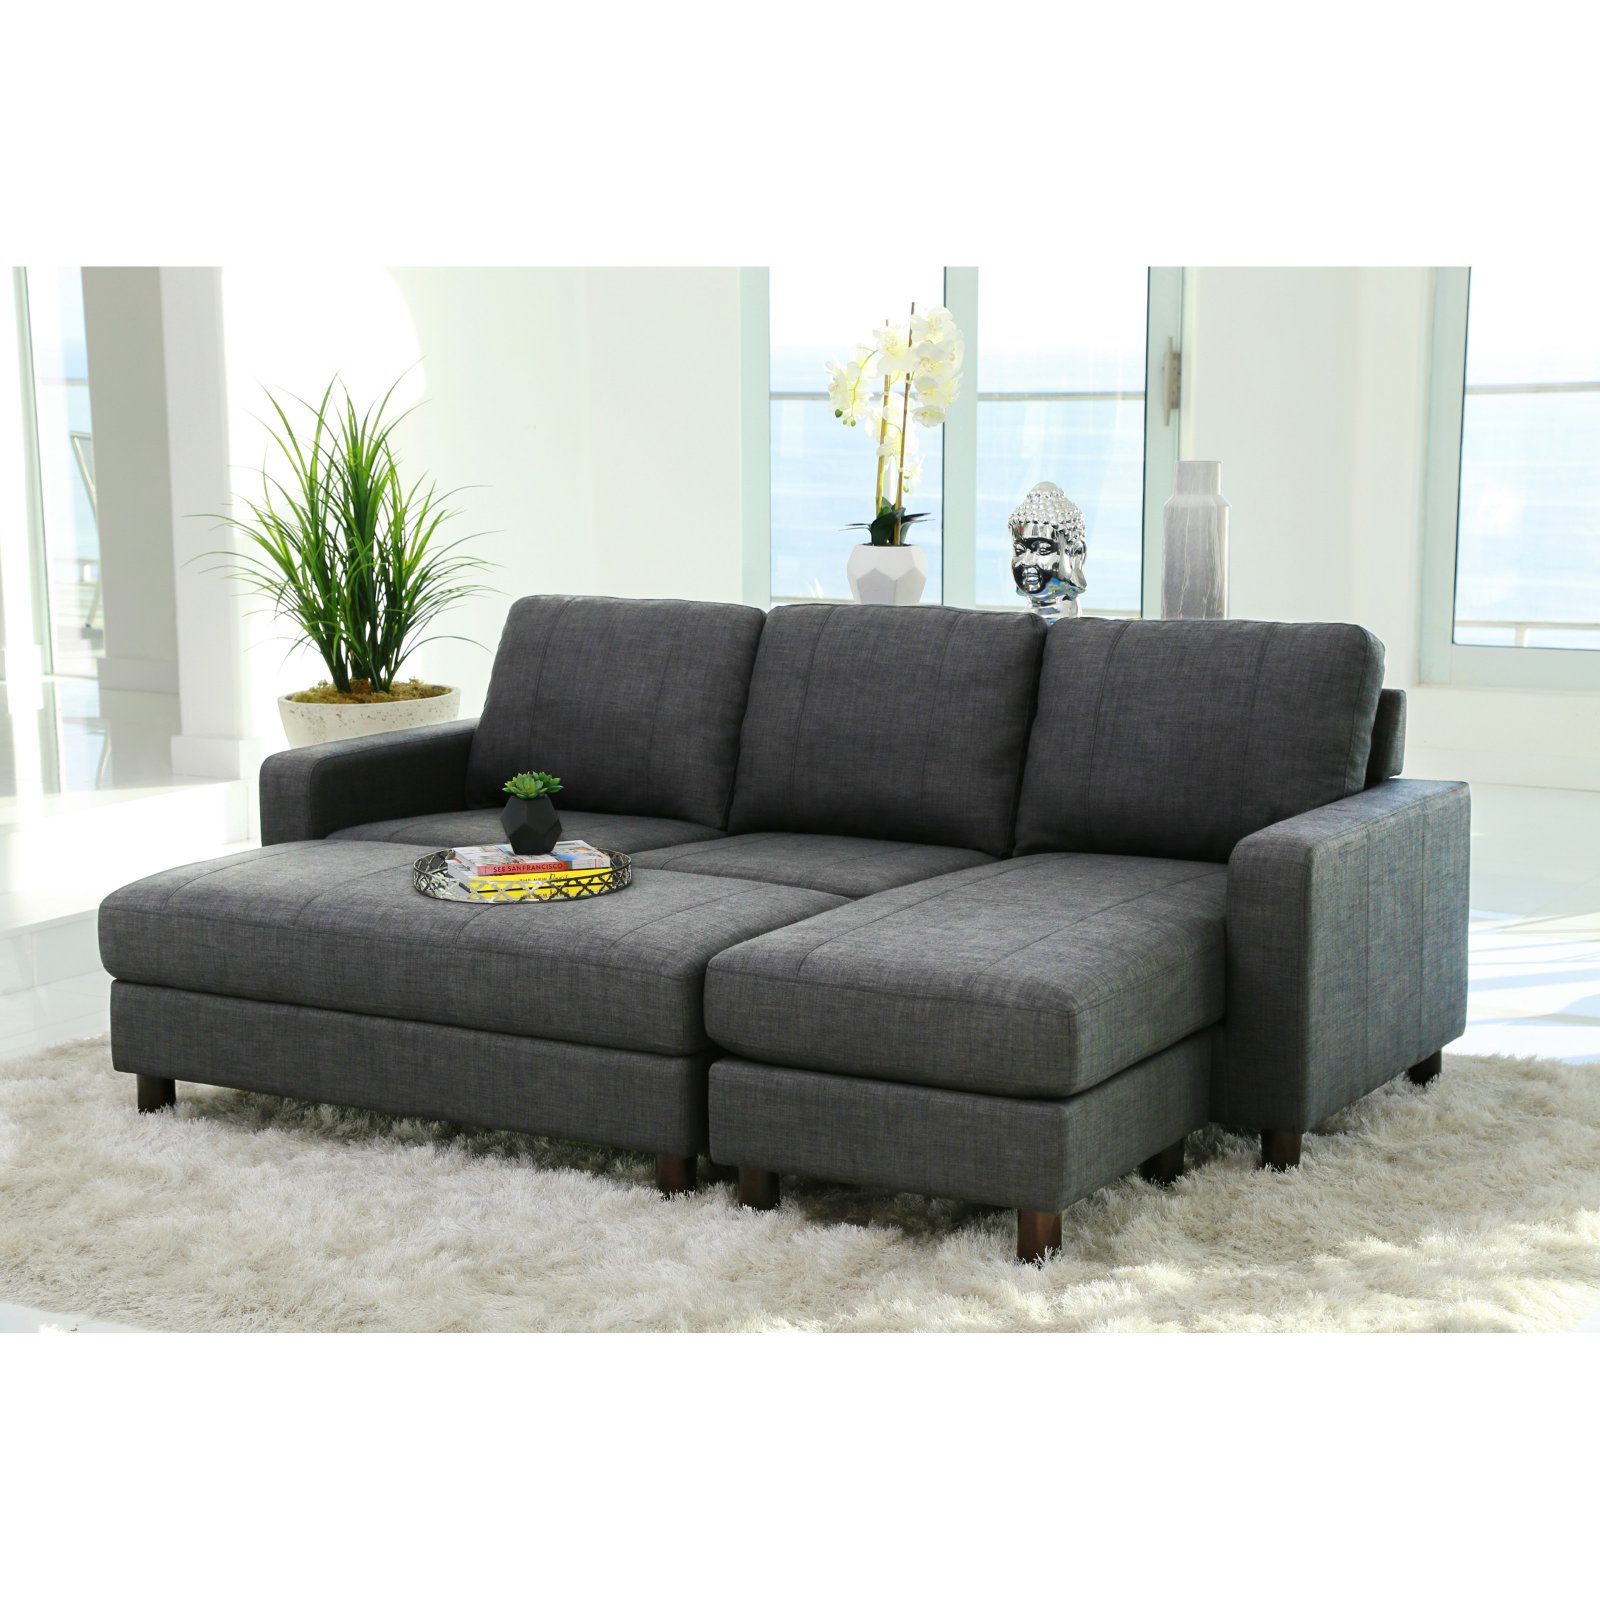 Abbyson Stanford Fabric Reversible Sectional Sofa With Storage Ottoman Walmart Com Walmart Com